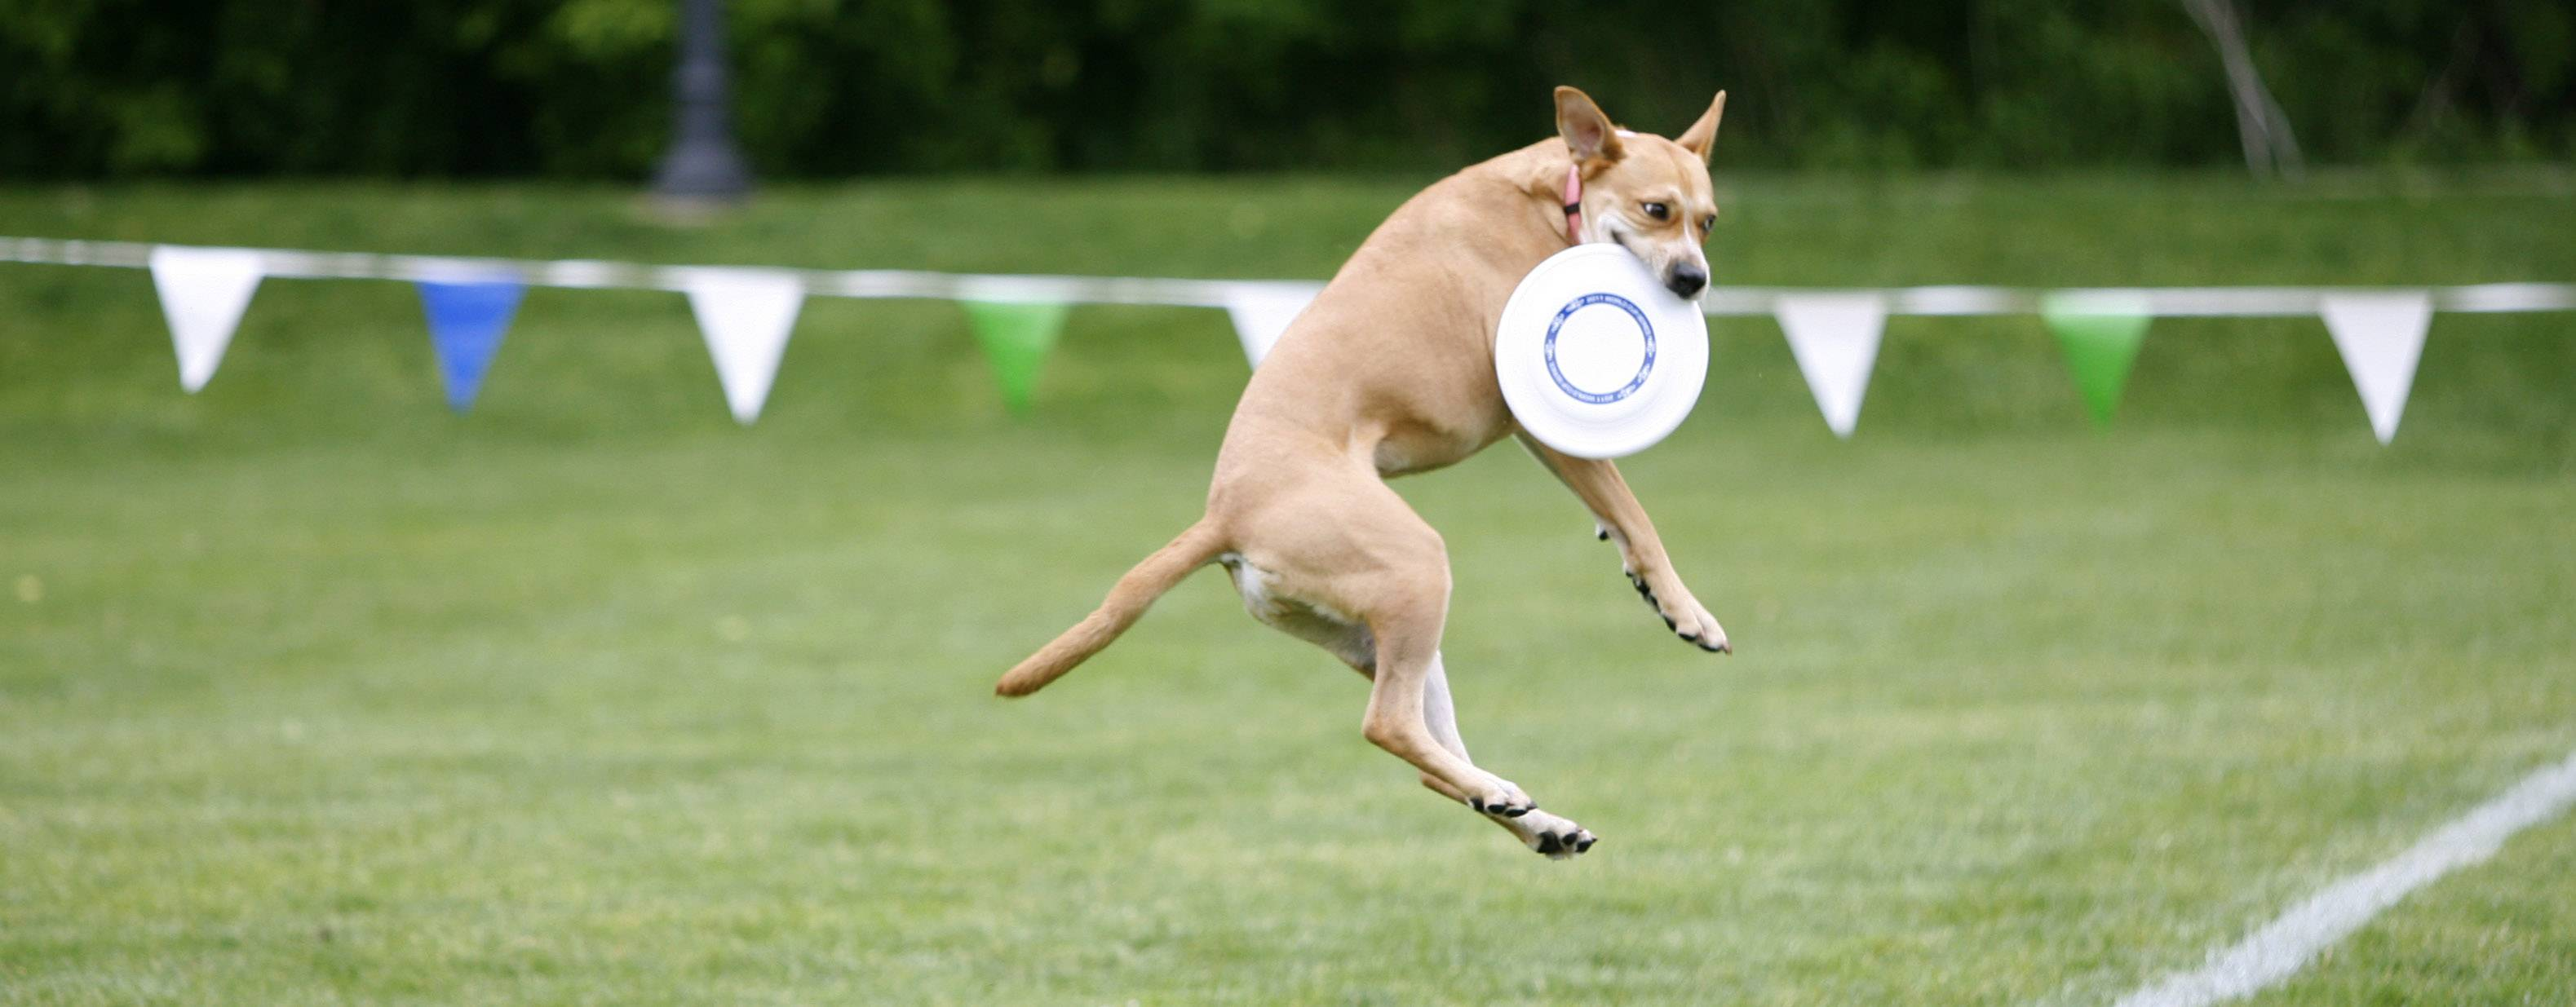 The Dog Disc Championships sponsored by Windy City K-9 Club is just one of several outdoor activities on Saturday in or near downtown Naperville.